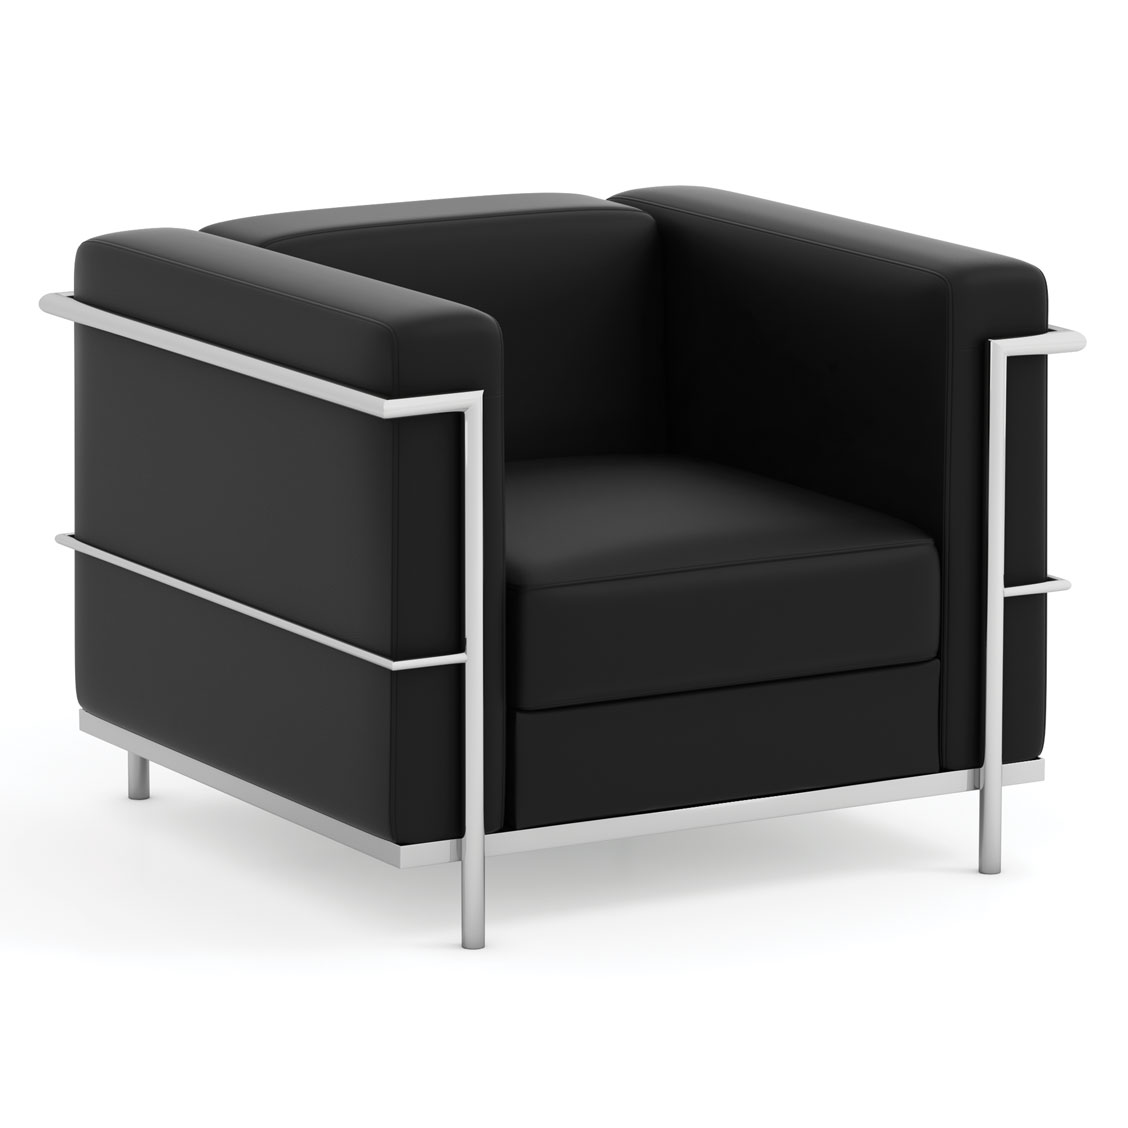 OfficeSource Madison Collection Club Chair with Chrome Exposed Frame